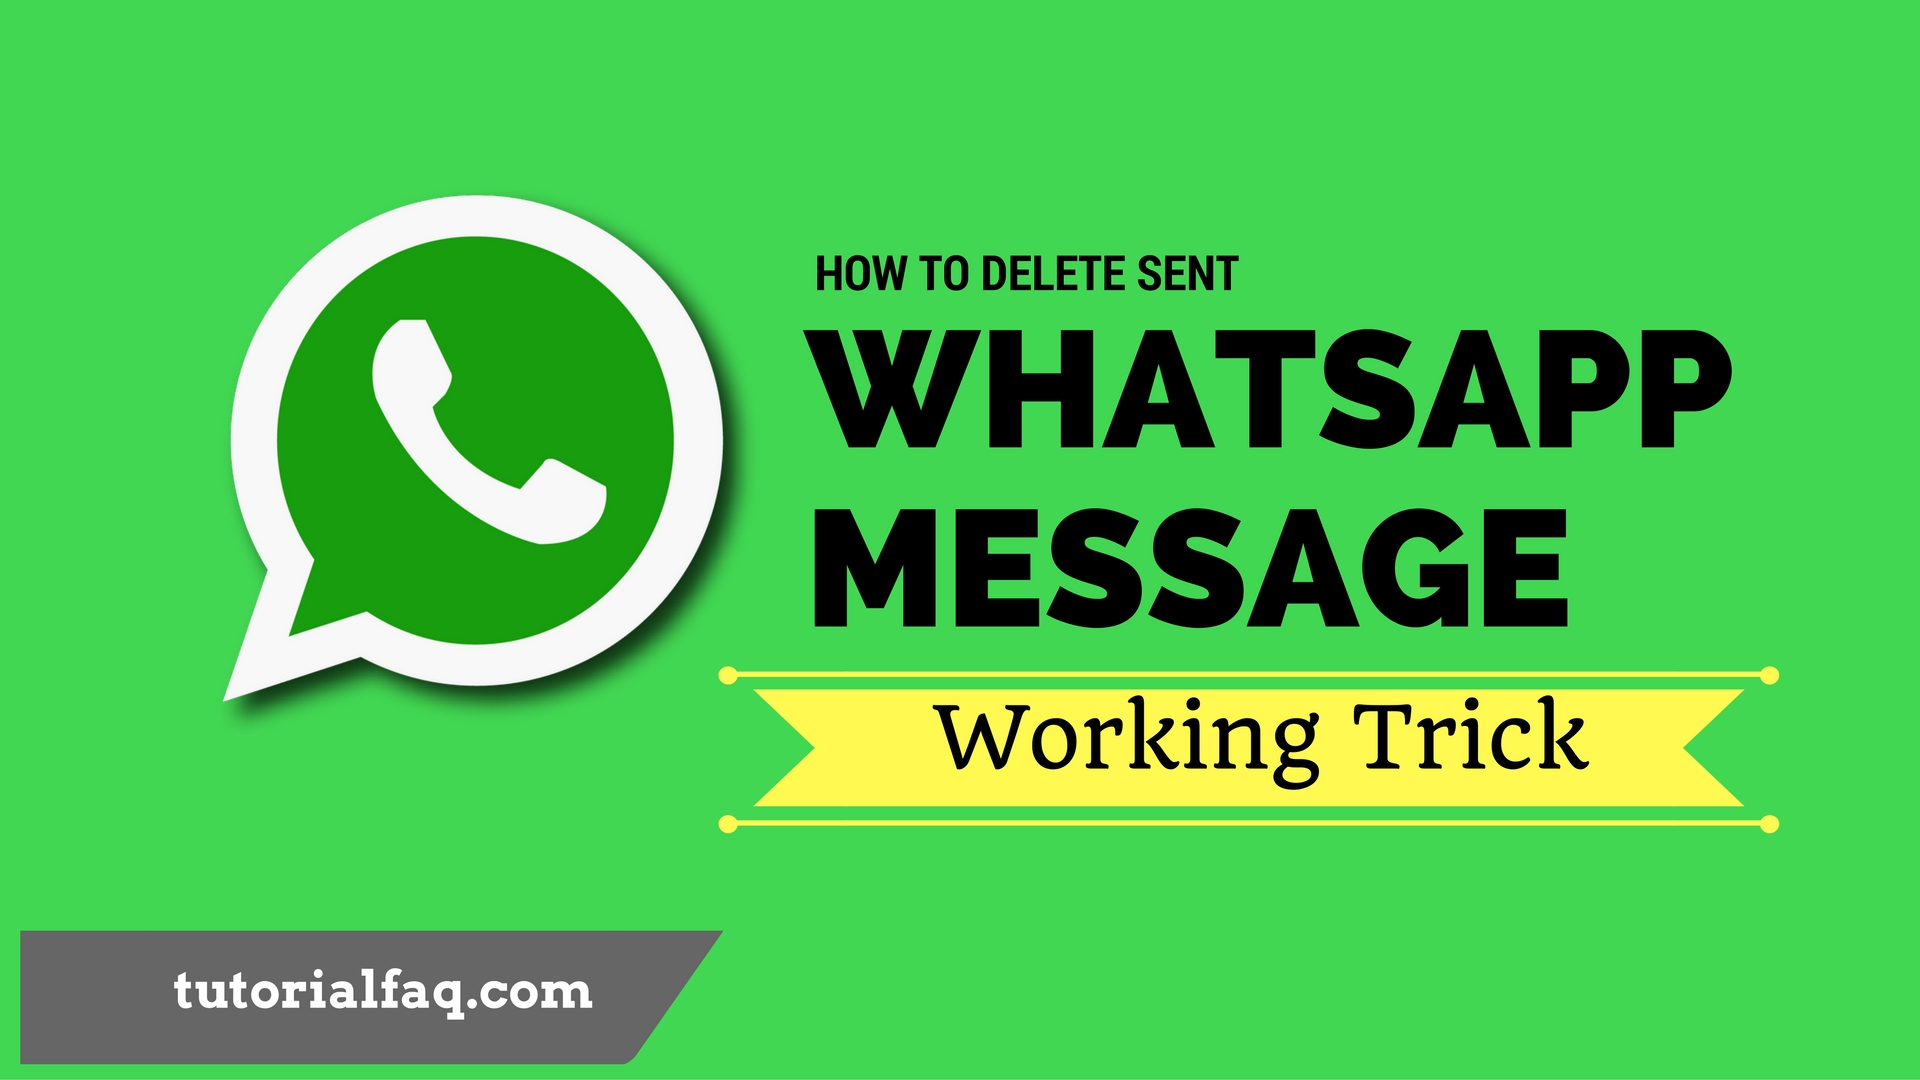 Is it possible to delete a sent WhatsApp message? Well the answer is a Yes. You can delete a Sent WhatsApp Message before it gets delivered to the recipient but it's not easy as it sounds and the procedure is quite long. WhatsApp has become very popular with over 1 billion users worldwide. Most of the times you will get caught up texting so many people at the same time and end up sending videos, photos or texts to wrong recipients. This happens everyday, it happened to me once but i was so lucky that the text still showed a clock icon; i had to enable airplane mode straight away and delete the text before it got sent. Years back WhatsApp never prompted confirmations on forwarded messages. There was no Yes / No dialogue to confirm the process implicating mere tapping on a contact was enough to get the message sent to a recipient. This was changed in recent updates, you can now confirm whether you are sending the money to the right person by tapping YES or NO. Deleting Sent WhatsApp Message Like said earlier, it's very possible to delete a sent WhatsApp message but it might cost you a conversation with the recipient for over a month. If your connection is slow then you might have a chance to terminate the process early. Am going to share two methods you can use to to delete sent WhatsApp message and prevent it from getting delivered to the recipient. Method 1 - Airplane Mode Emmergency If you still see a clock icon (see screenshot above) on the Sent WhatsApp Message, quickly activate Airplane Mode to interrupt the connection then personally delete the message. The clock icon shows the message hasn't yet left your phone but this rarely happens because WhatsApp messages get sent very fast. The clock icon usually shows up in case your connection is slow or in case of any network interruption. Method 2 - Block recipient for 30 days In case the message gets sent, you can still prevent it from getting delivered only if the recipient is not online. If you see a single tick like in the screenshot above then you have to block the recipient for at least 32 days then unblock them after but if you see a double tick, there is no way you can reverse it. Previously, WhatsApp messages stayed on the server for months but this was ruled out. Of late they spend a maximum of 30 days and if undelivered, they are automatically deleted. A single tick shows the message is already on the server but not yet delivered to the recipient. You can take advantage of this by blocking the recipient for a month and the Sent WhatsApp Message will not be delivered. This will cost you a conversation with the recipient for a month. I have tried these tricks personally and they have worked for me meaning they'll work for you too. It's only possible to delete a Sent WhatsApp Message if you don't see a double tick. Have you encountered a similar situation before? how did you delete the sent WhatsApp message? share your experience with us below.